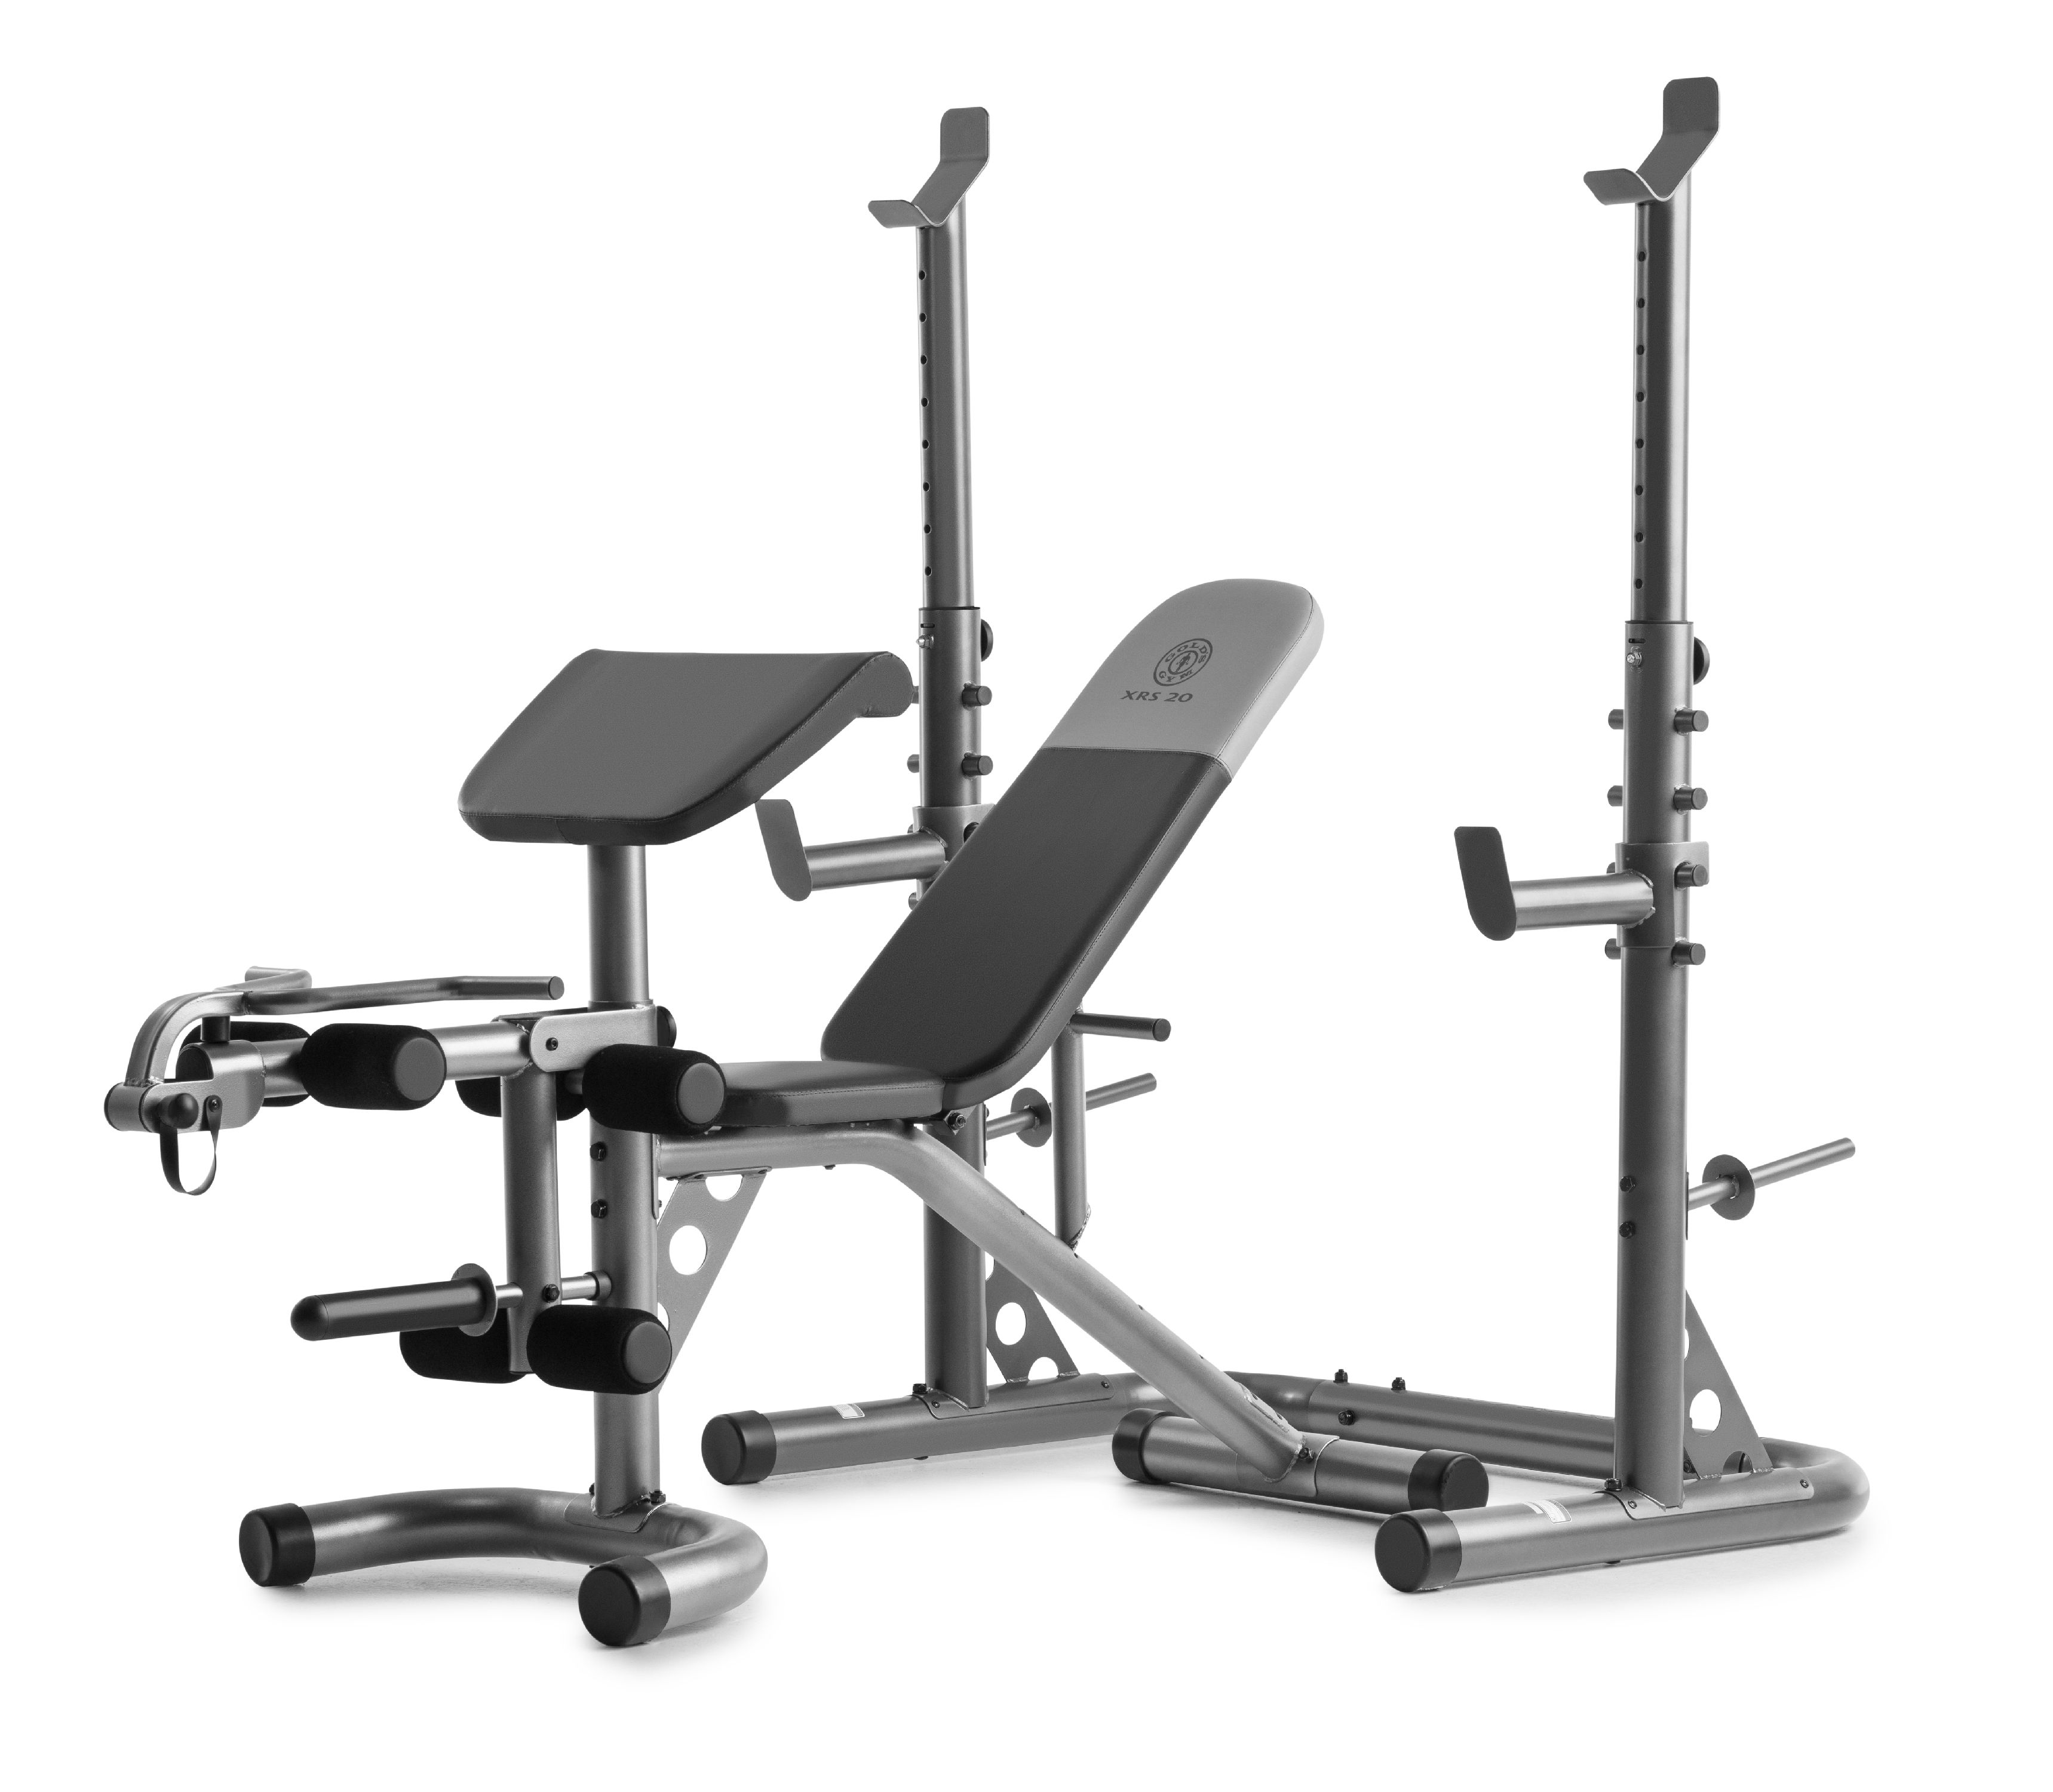 gold s gym xrs 20 adjustable olympic workout bench with squat rack leg extension preacher curl and weight storage walmart com